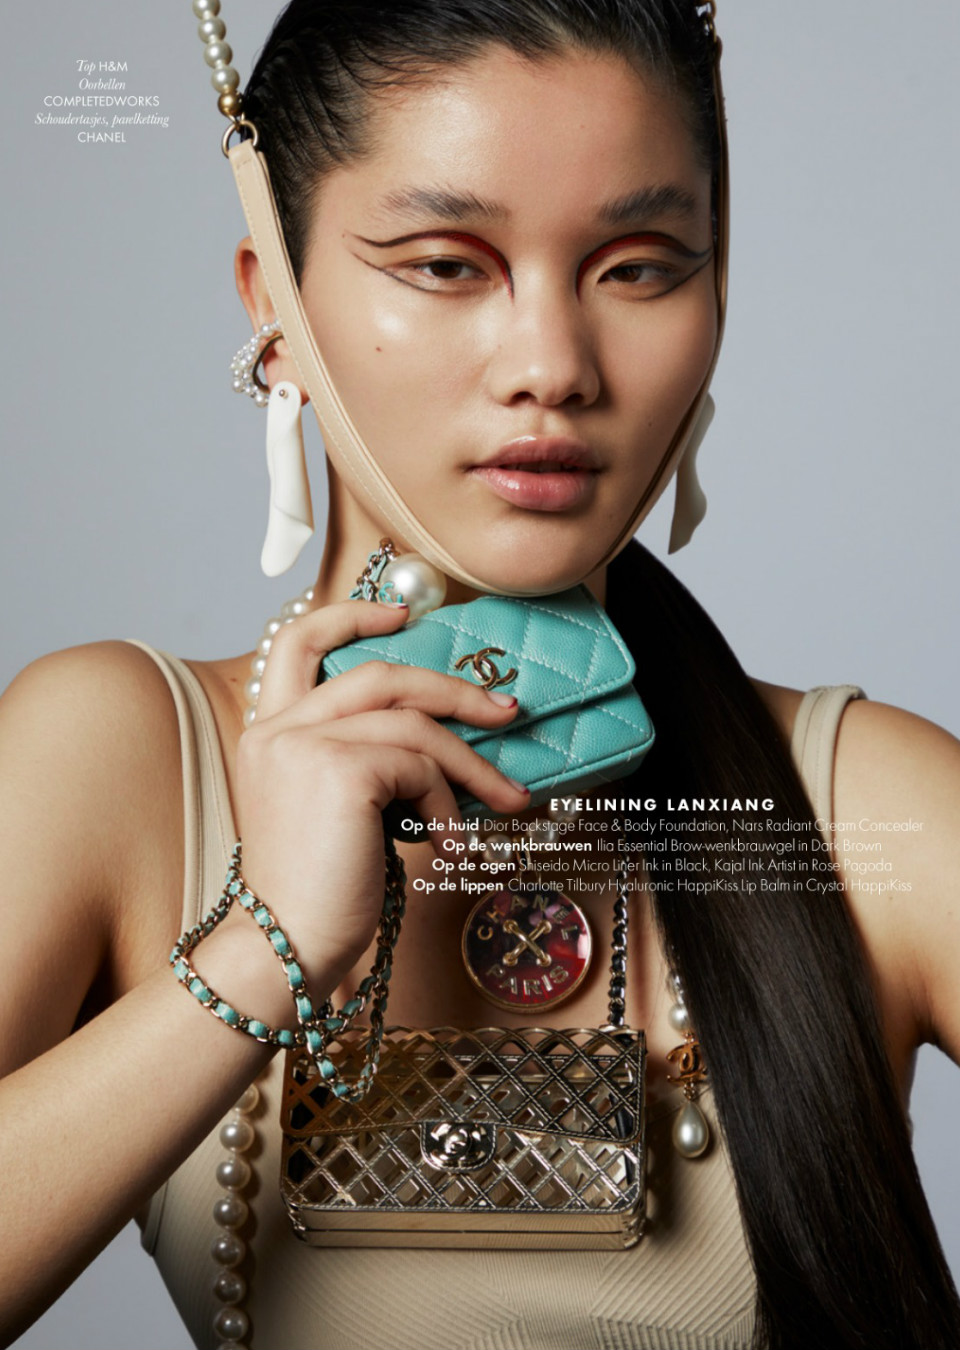 Lanxiang for Elle Magazine